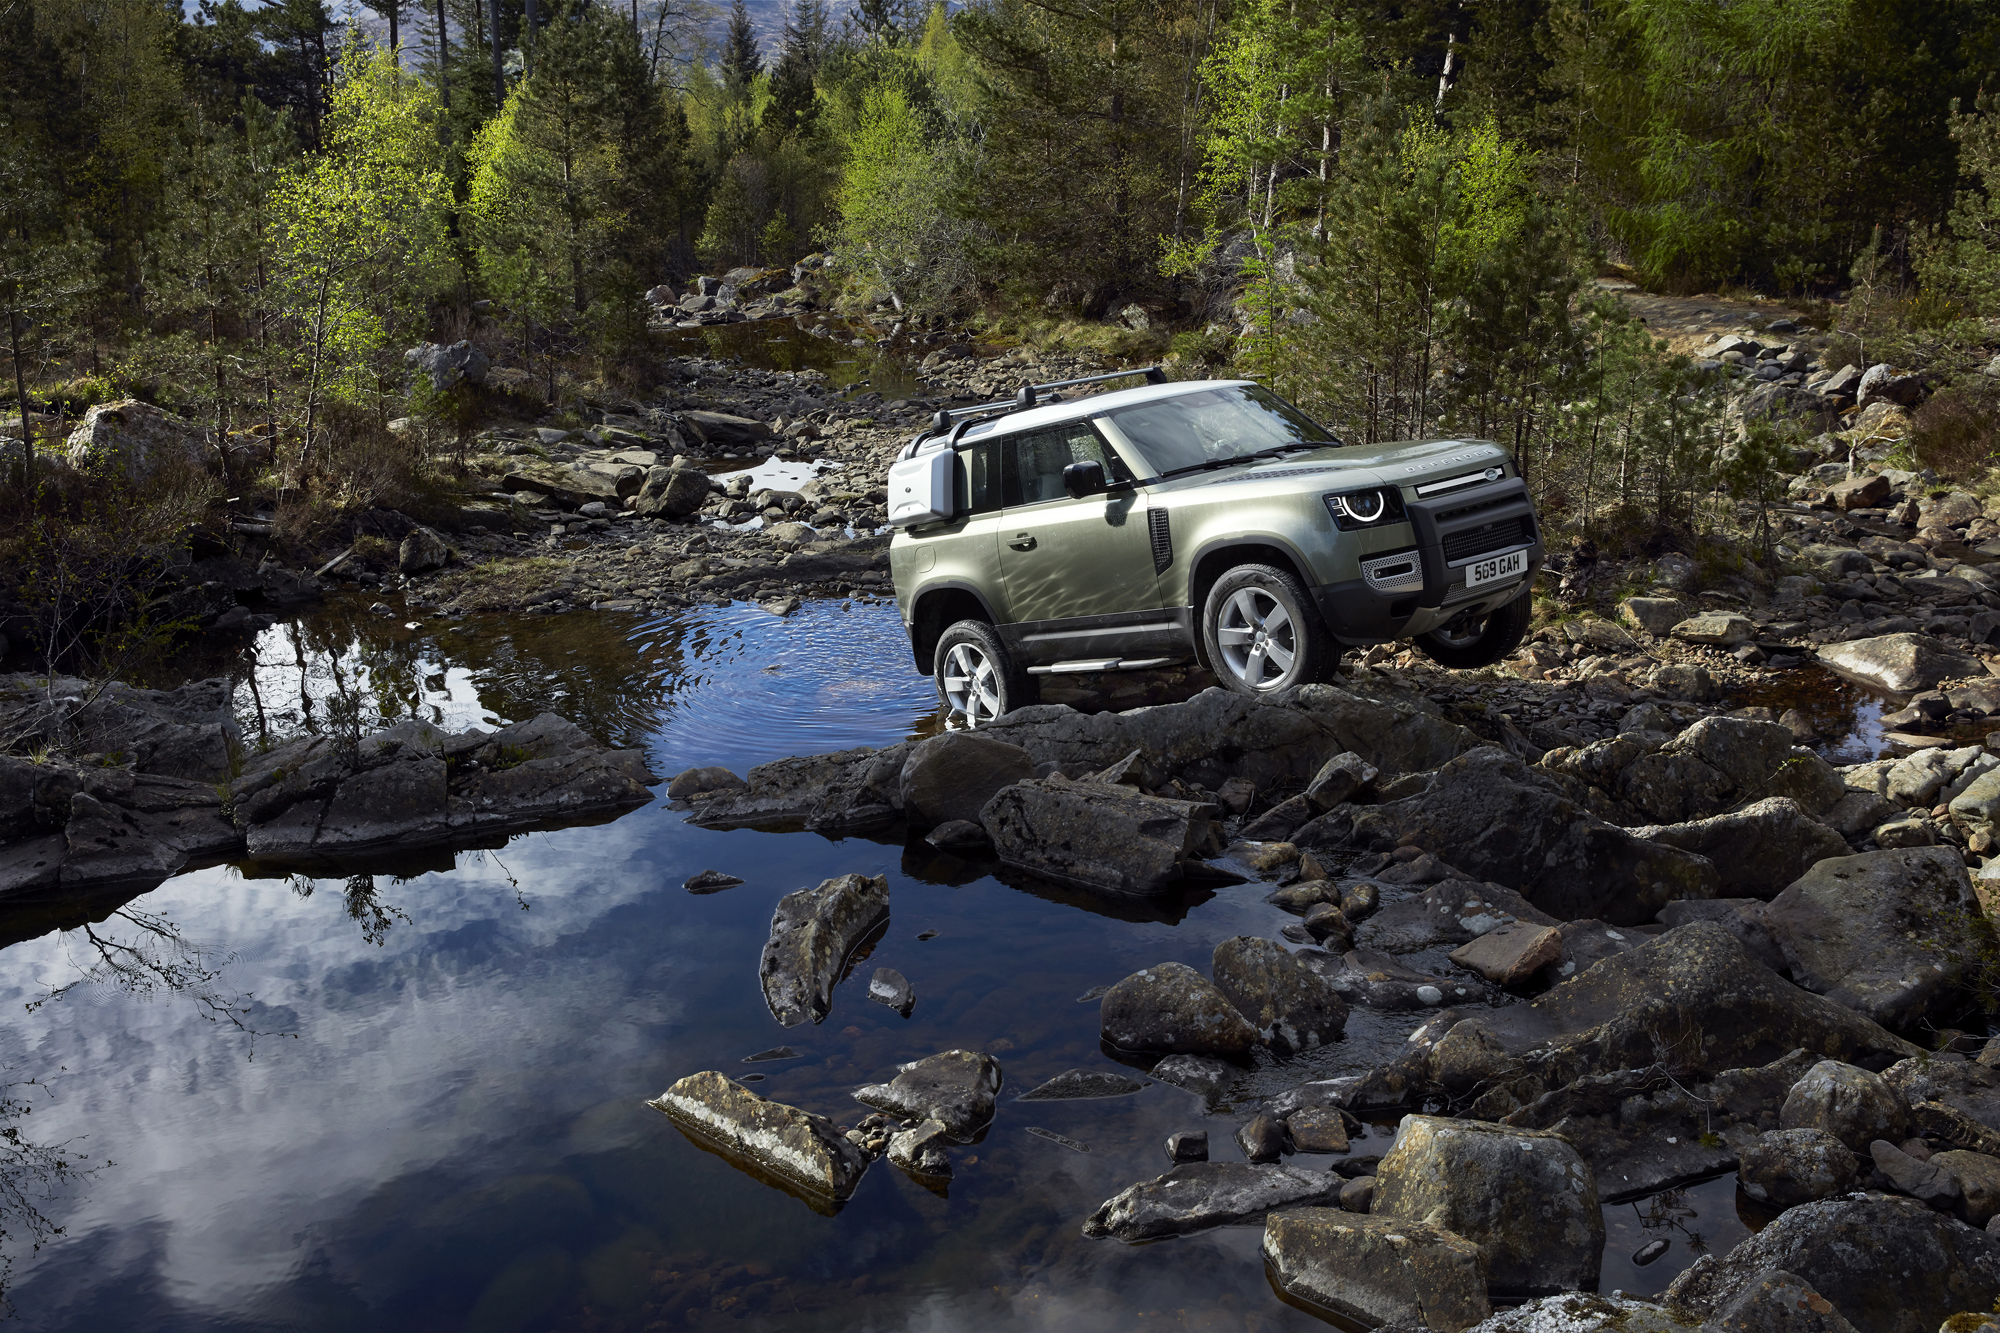 The 4x4 has a wading depth of up to 90cm (Land Rover/PA)